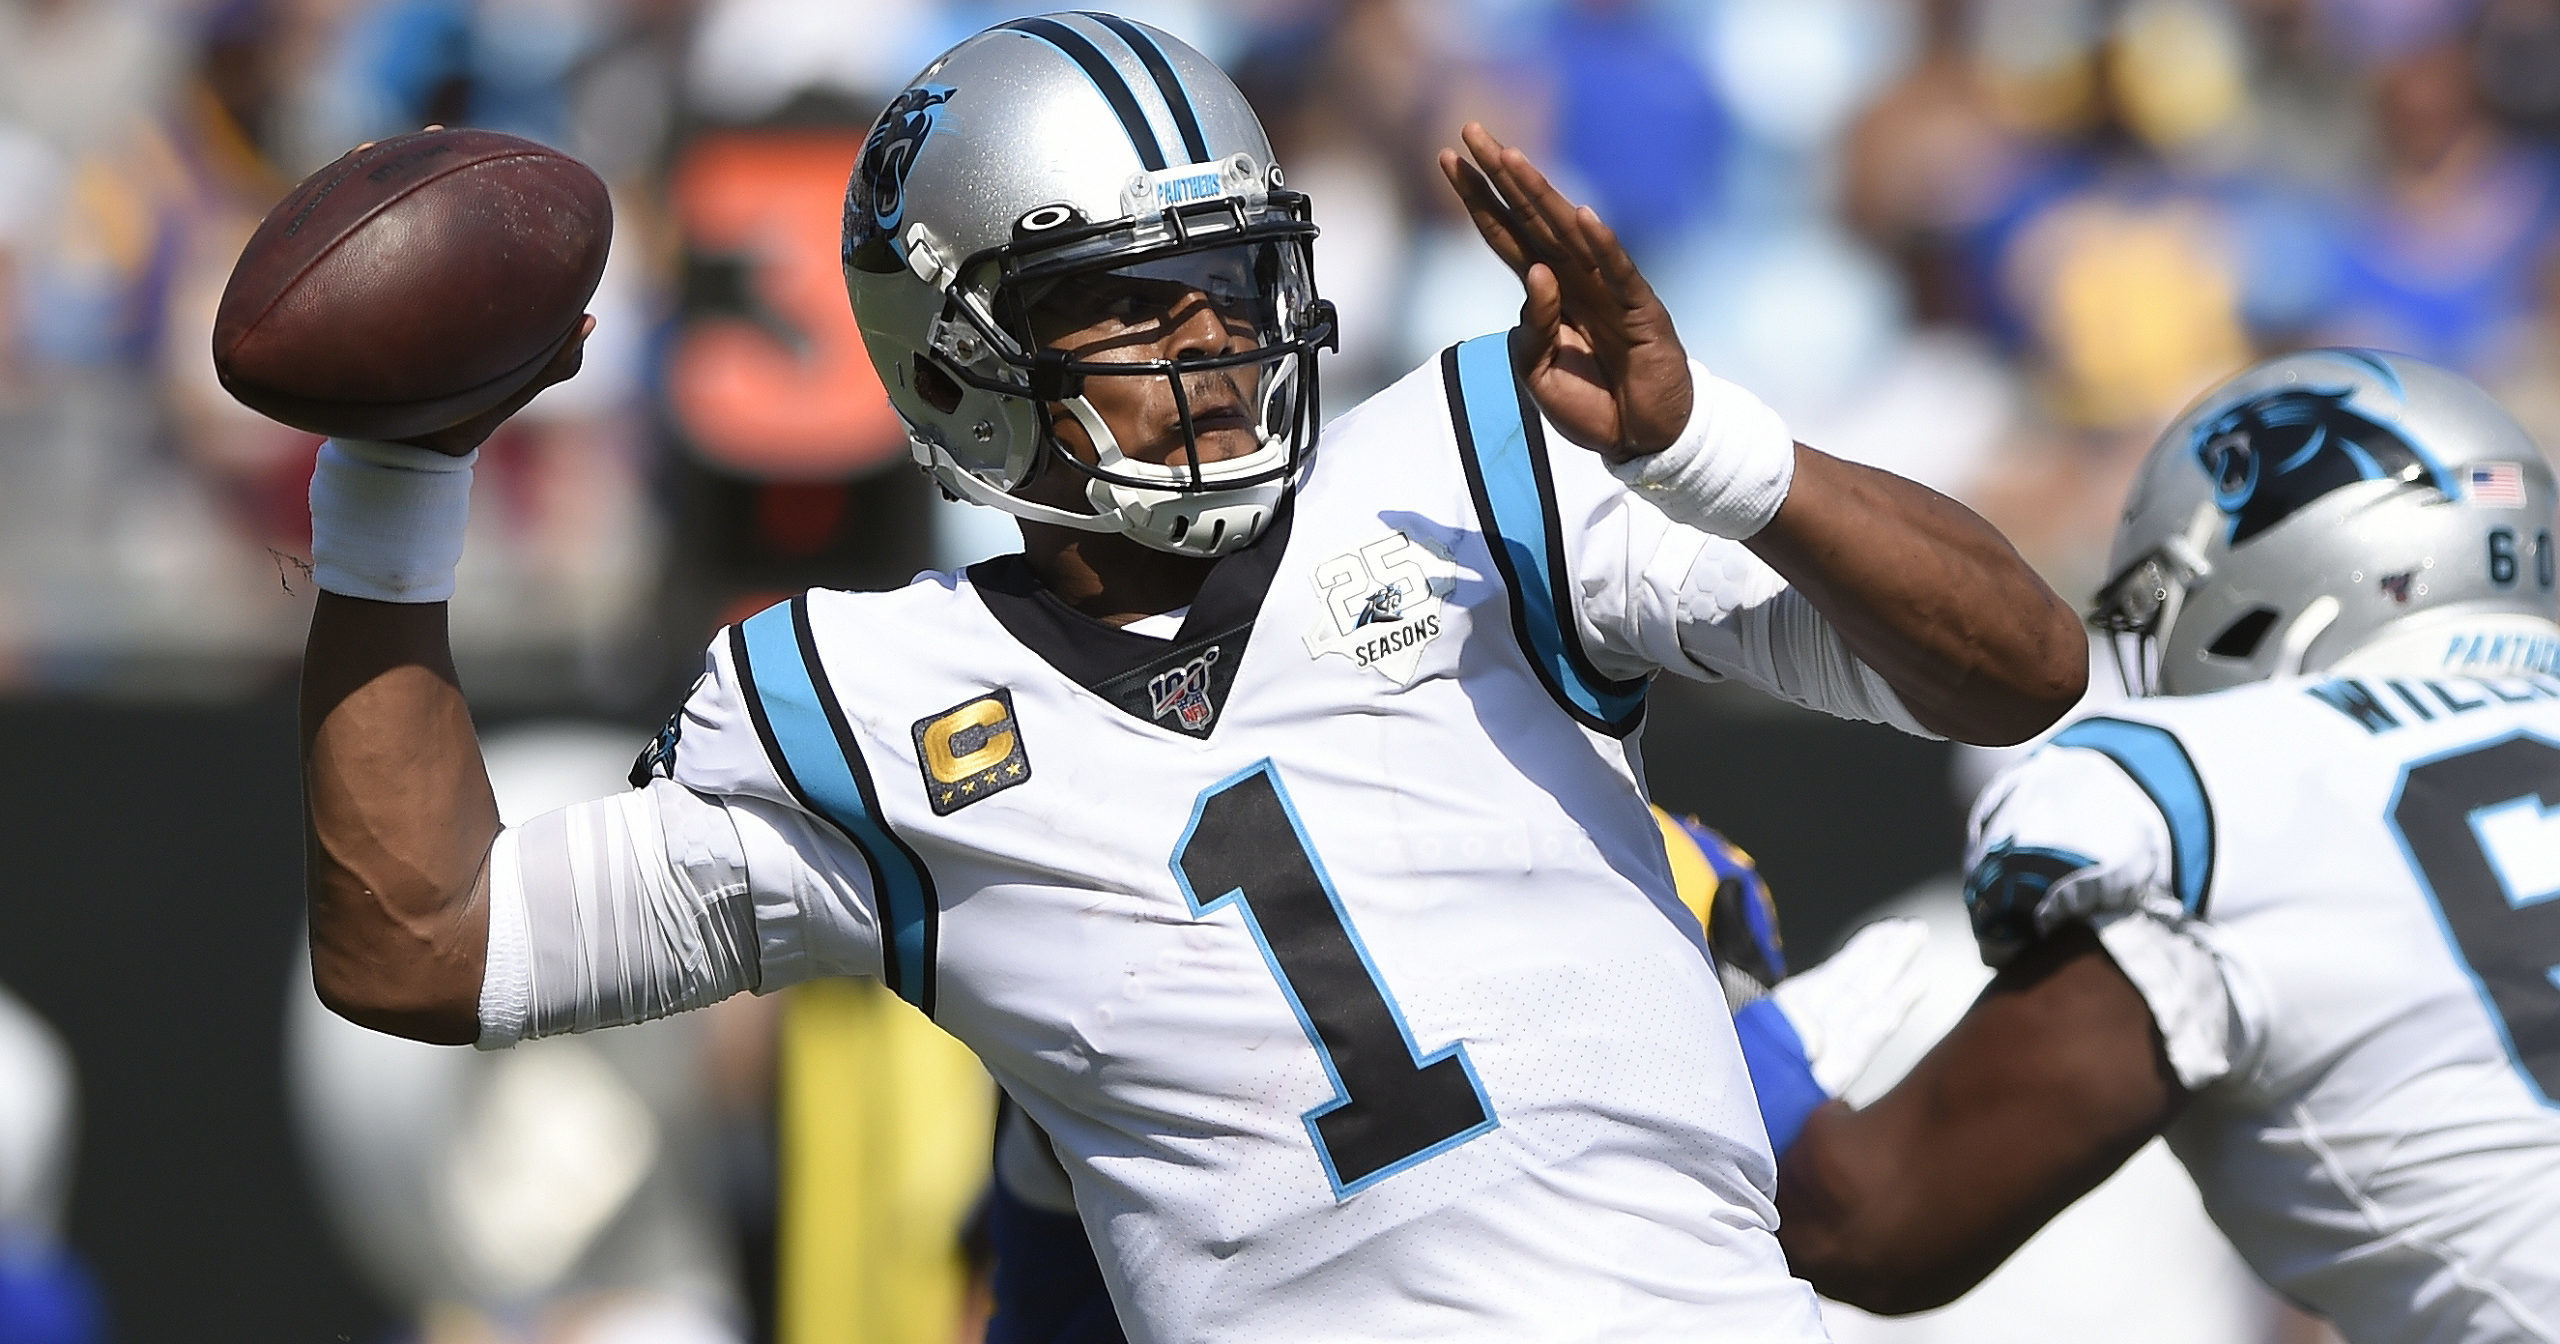 Cam Newton looks for a receiver during the Carolina Panthers' 30-27 loss to the Los Angeles Rams on Sept. 9, 2019.